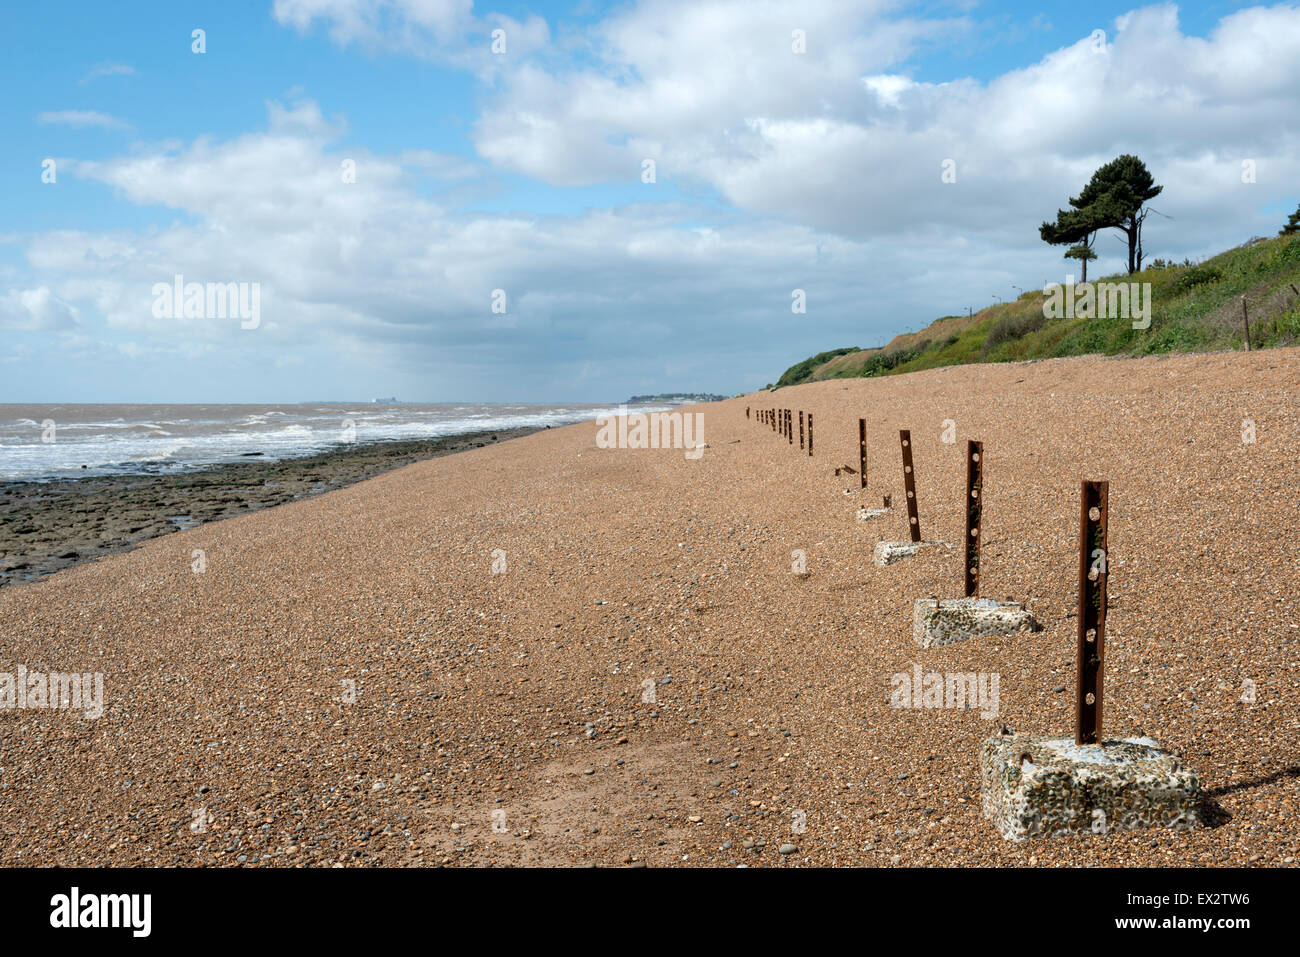 Anti-invasion defences from World War Two protecting the former RAF radar station at Bawdsey Ferry, Suffolk, UK. - Stock Image